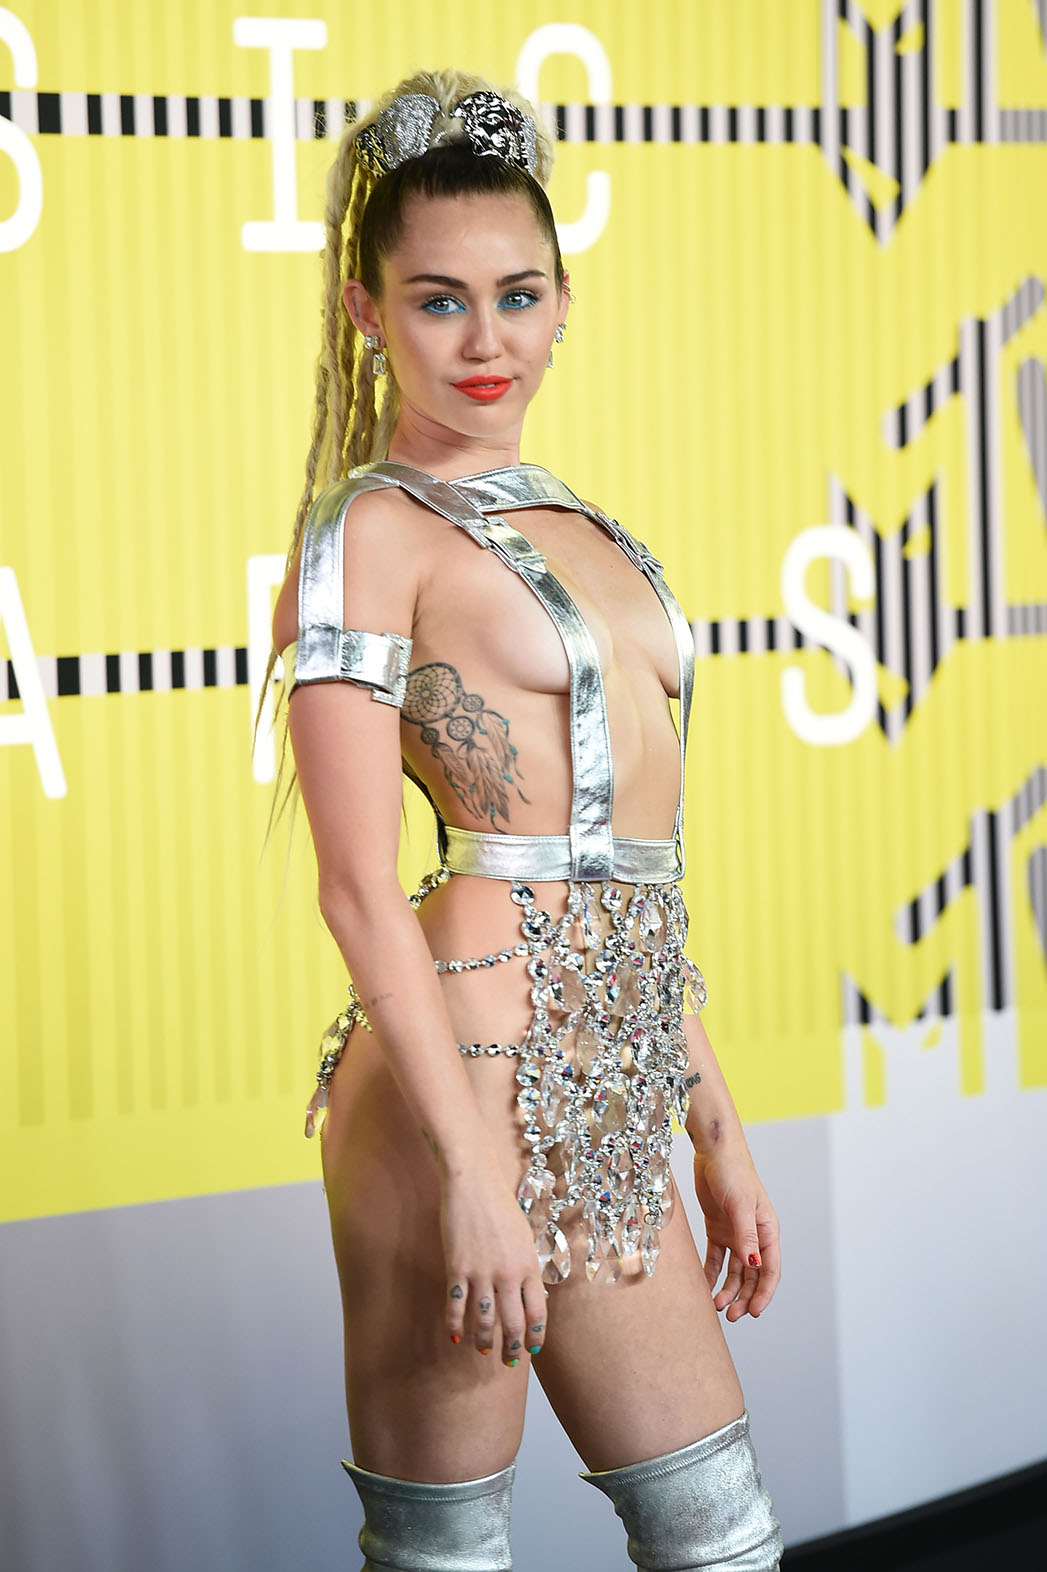 Mtv Vmas A Breakdown Of Miley Cyrus Outrageous Outfits Hollywood Reporter